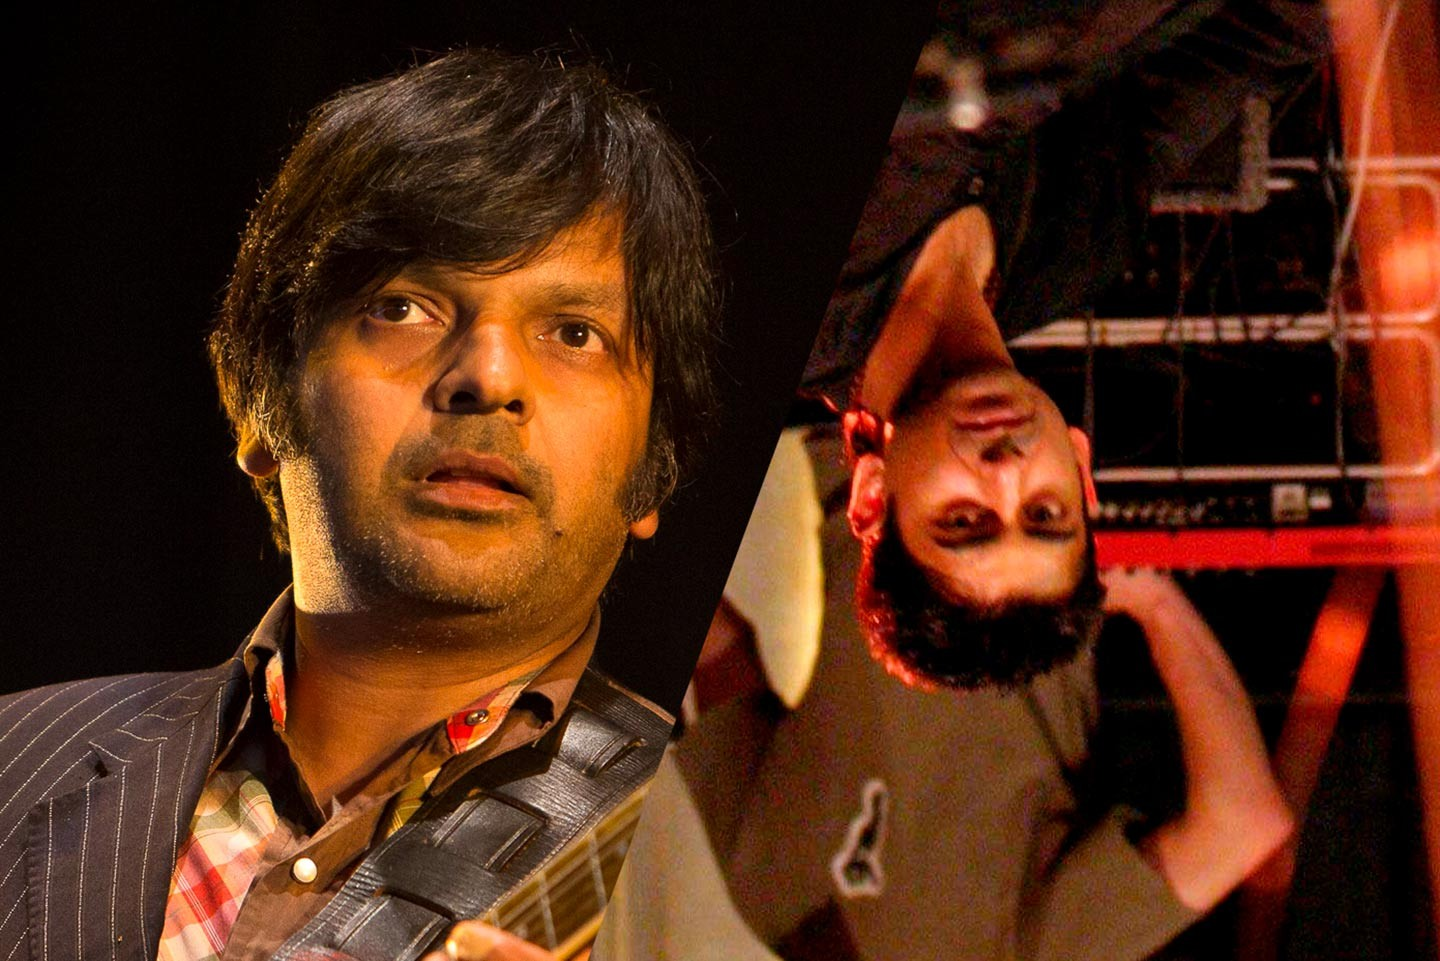 Cornershop et l'Asian Underground, chefs de file indienne